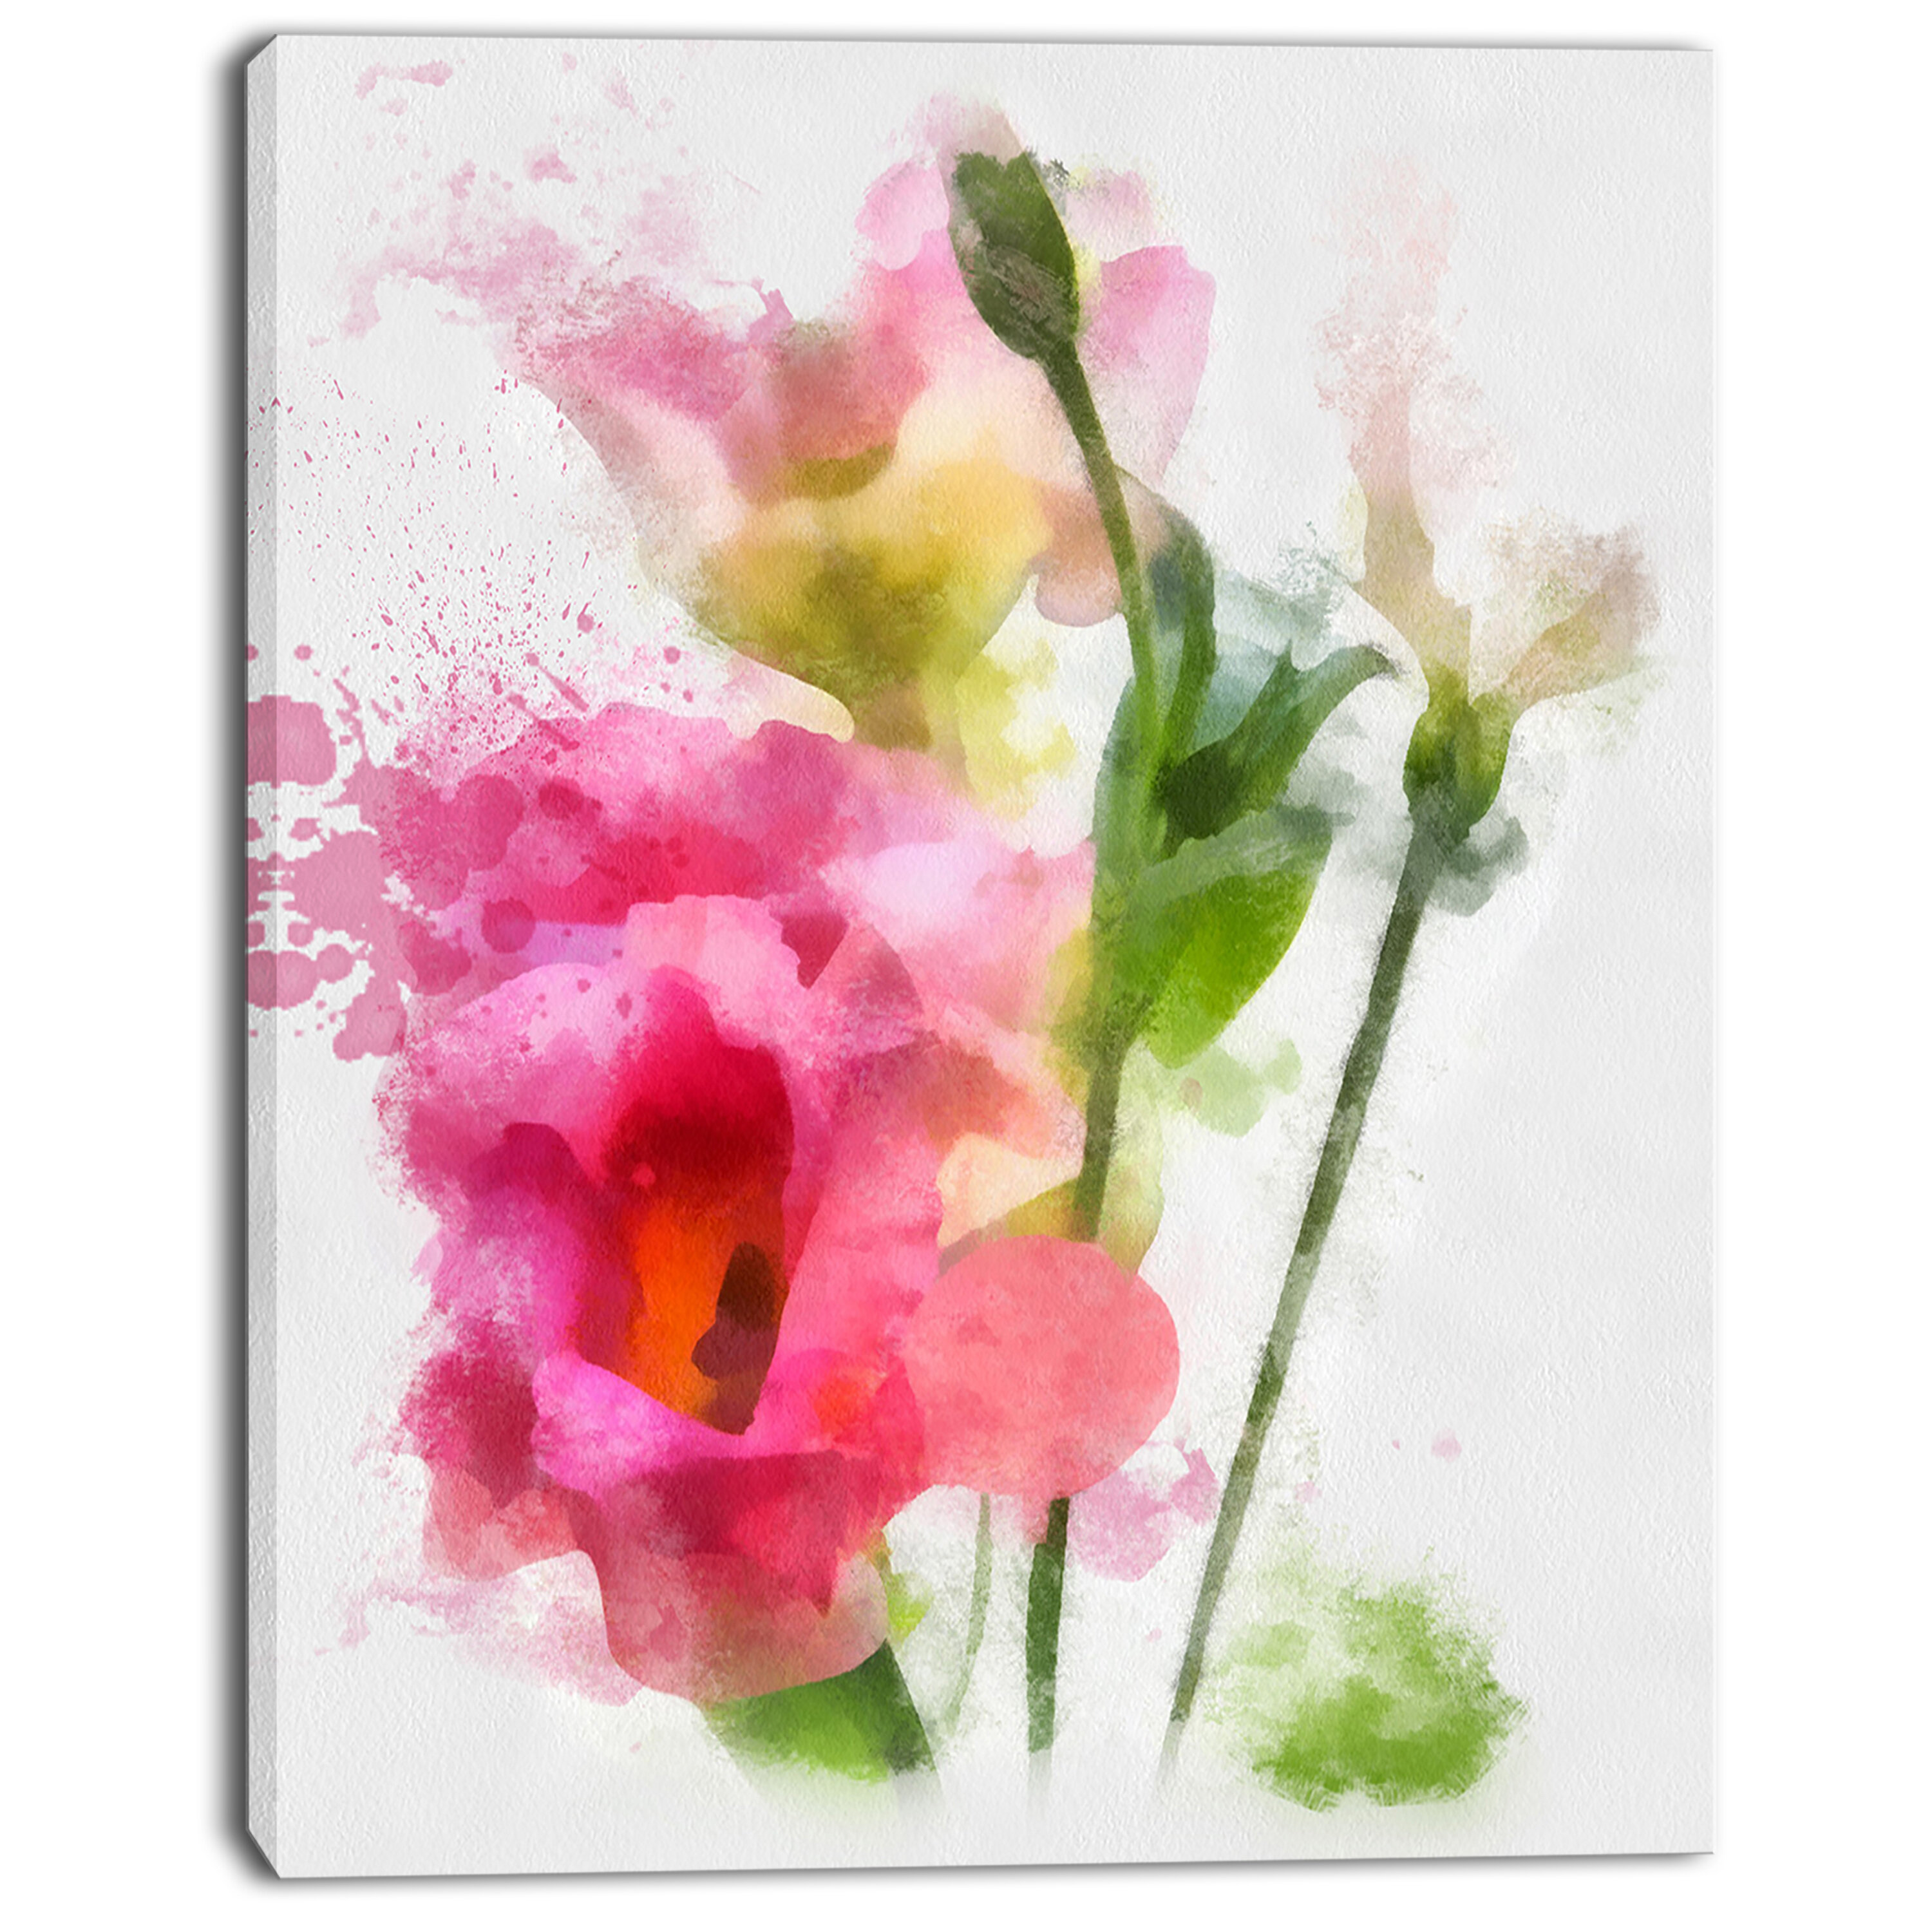 Designart Hand Drawn Pink Watercolor Flower Painting Print On